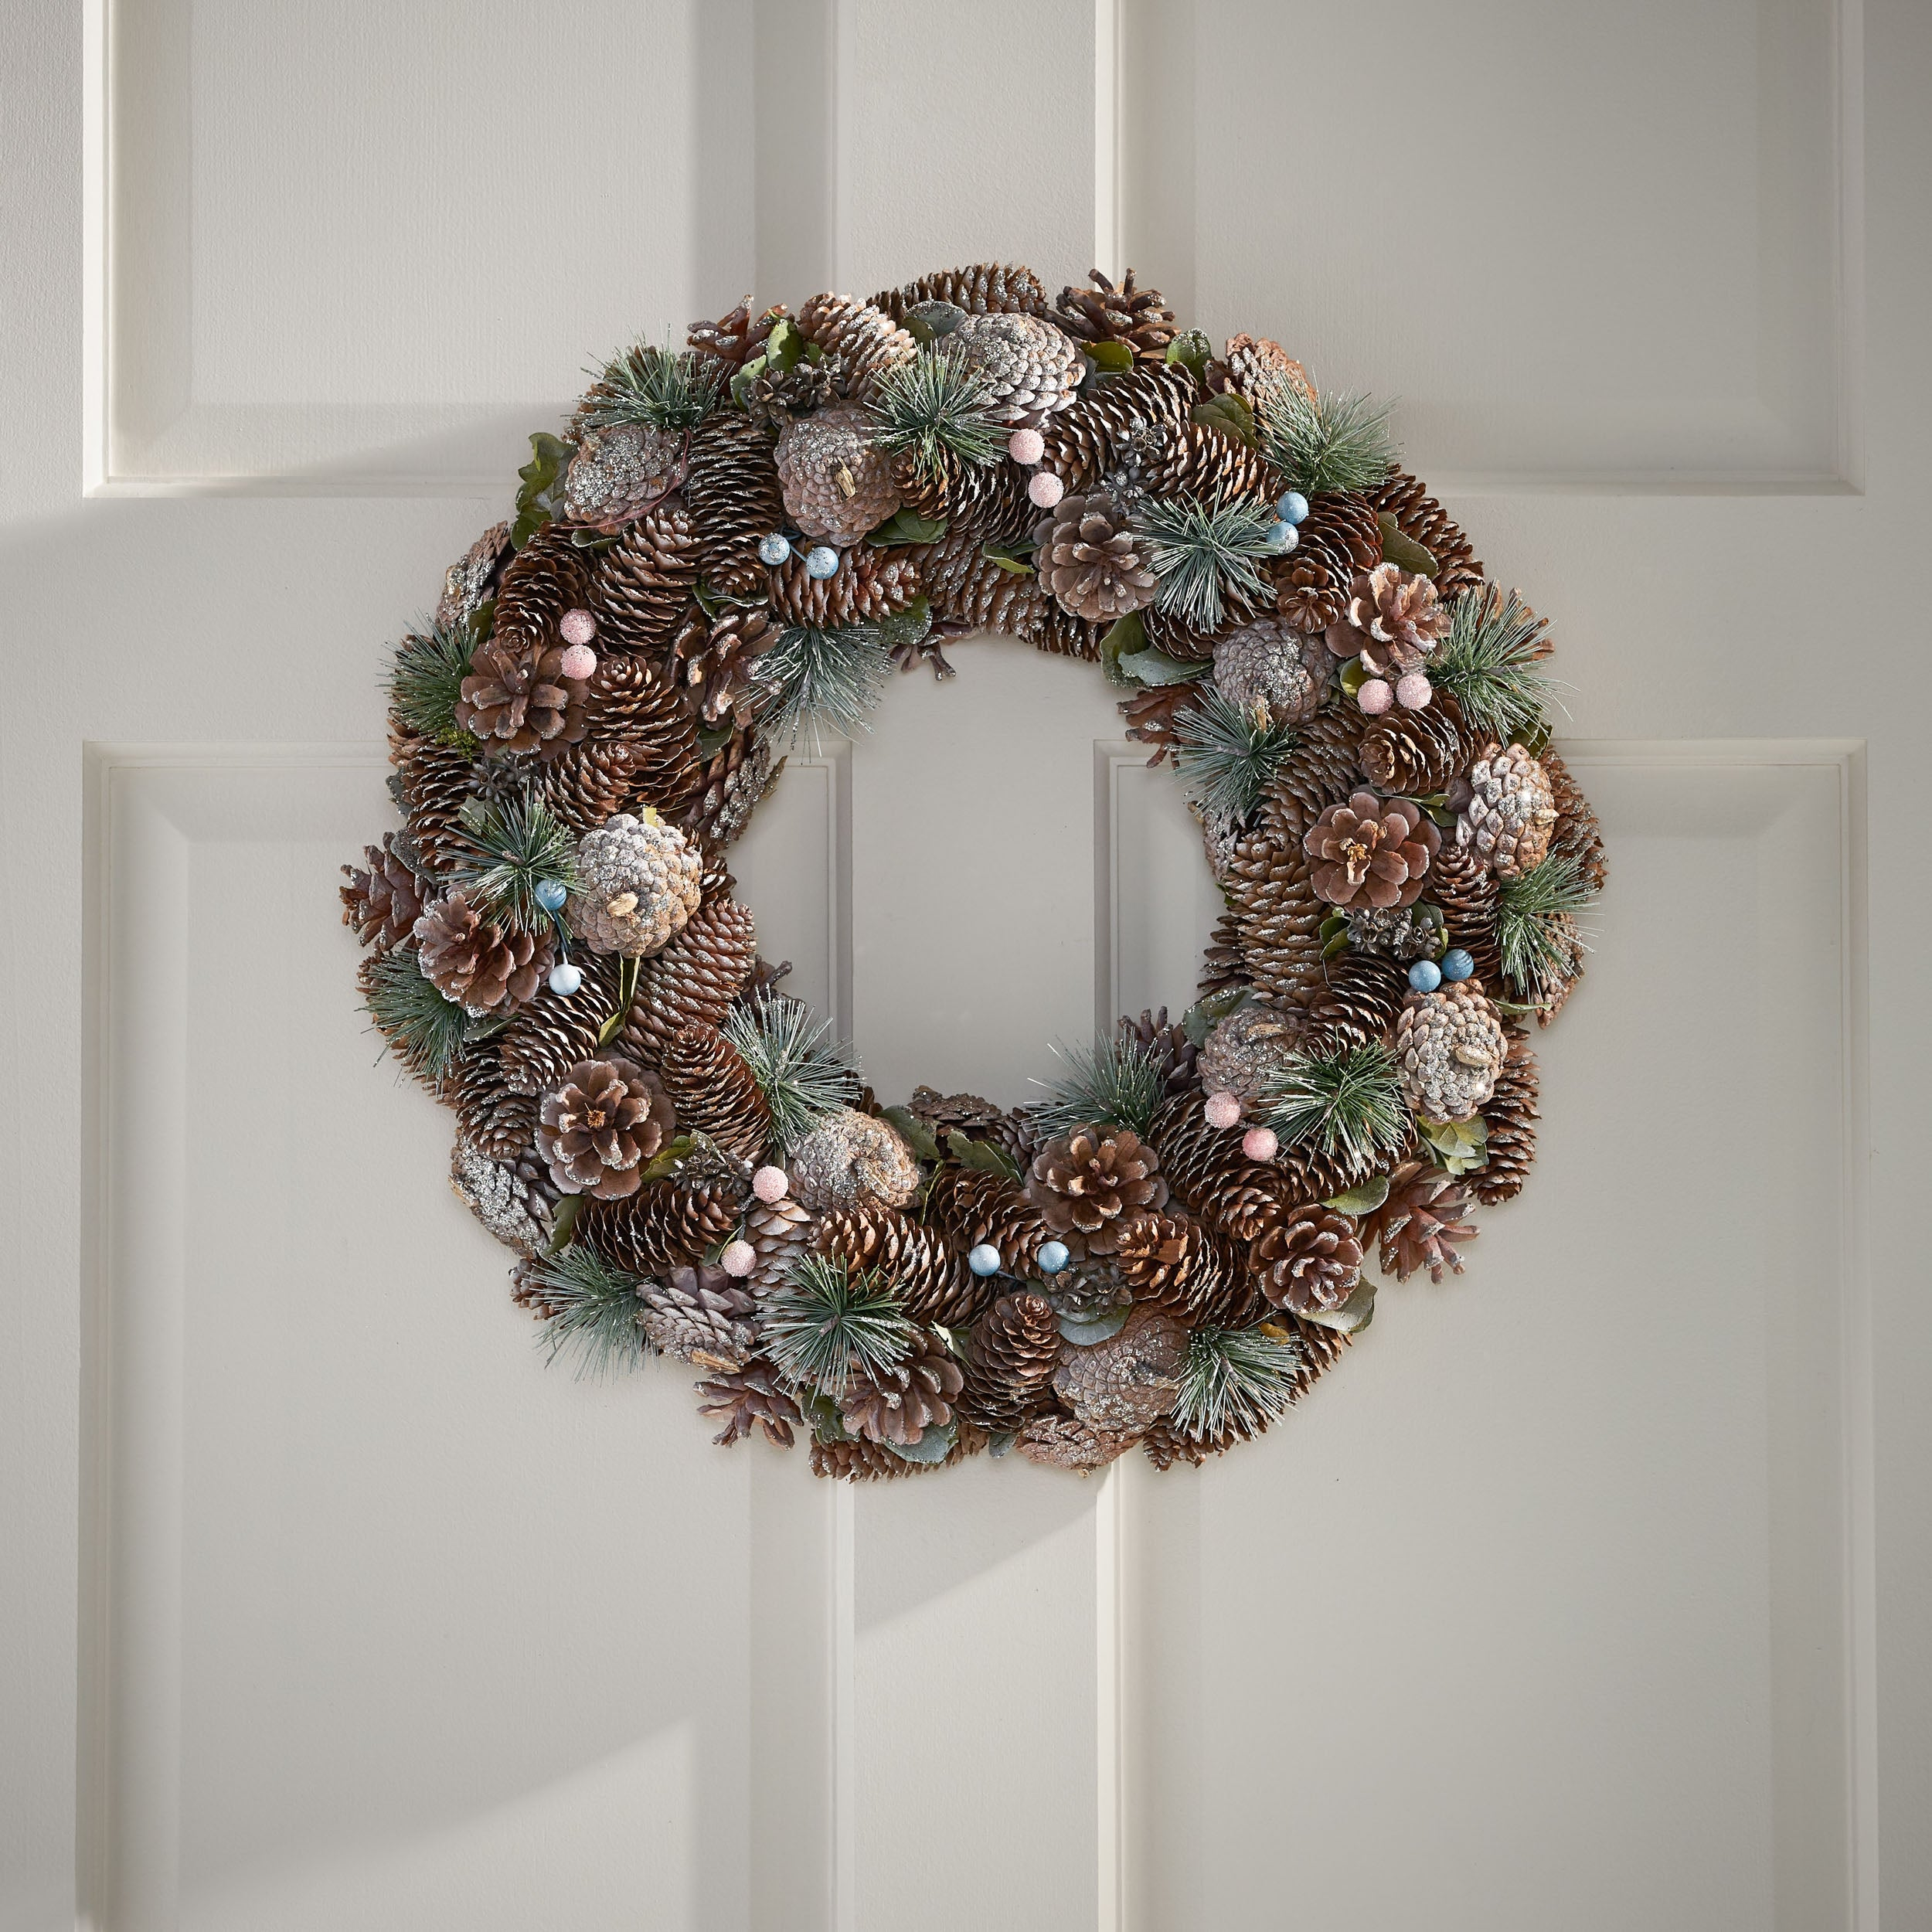 Modern 18 5 Pine Cone And Glitter Artificial Christmas Wreath Natural And White By Christopher Knight Home Overstock 32046997